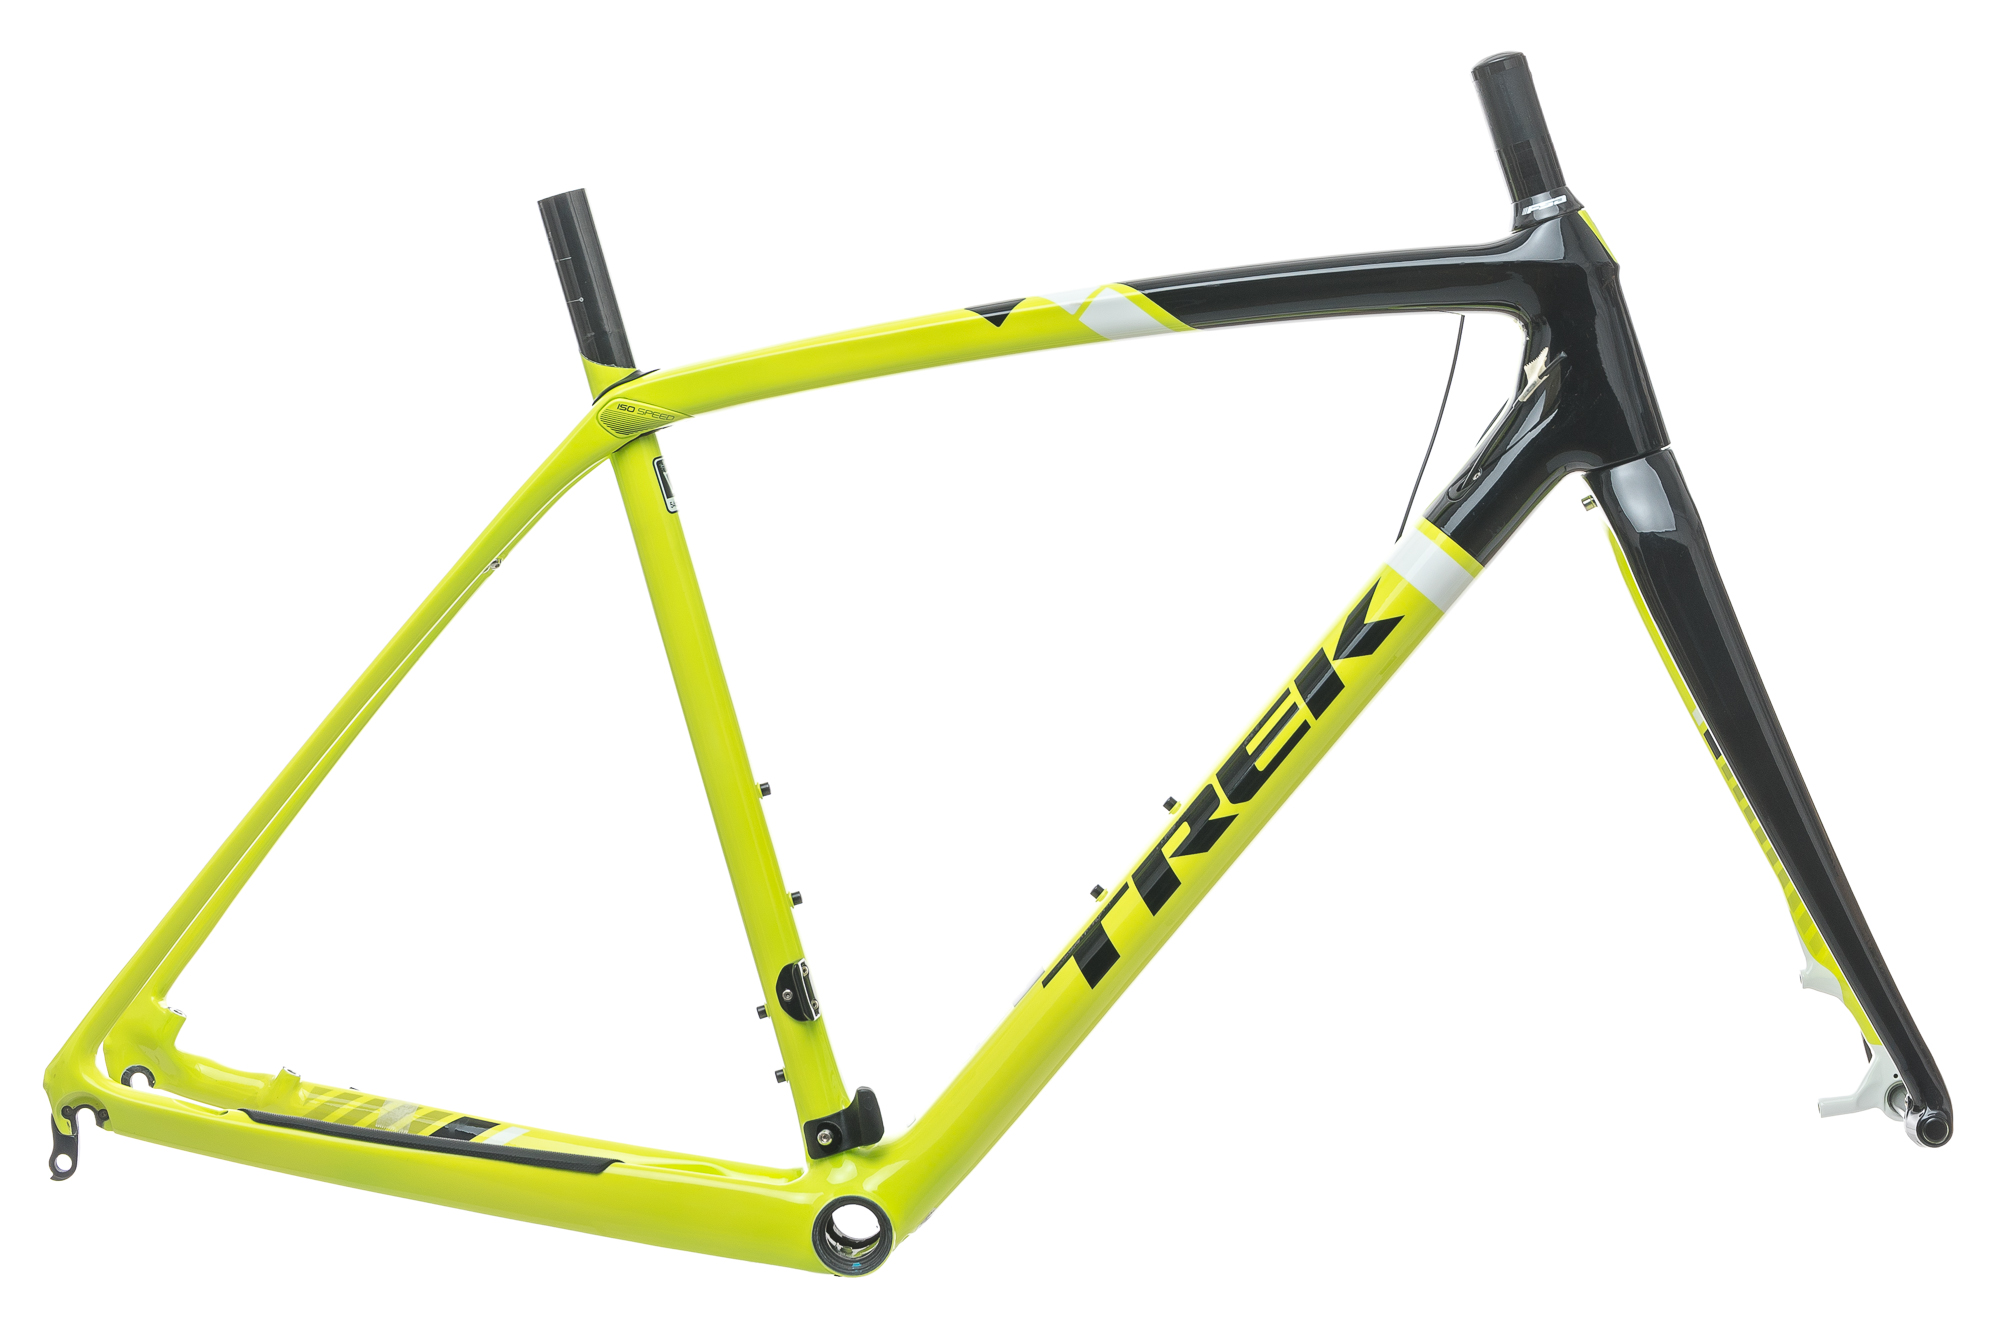 2016 Trek Boone Disc Cyclocross Frame Set 54cm Medium Oclv